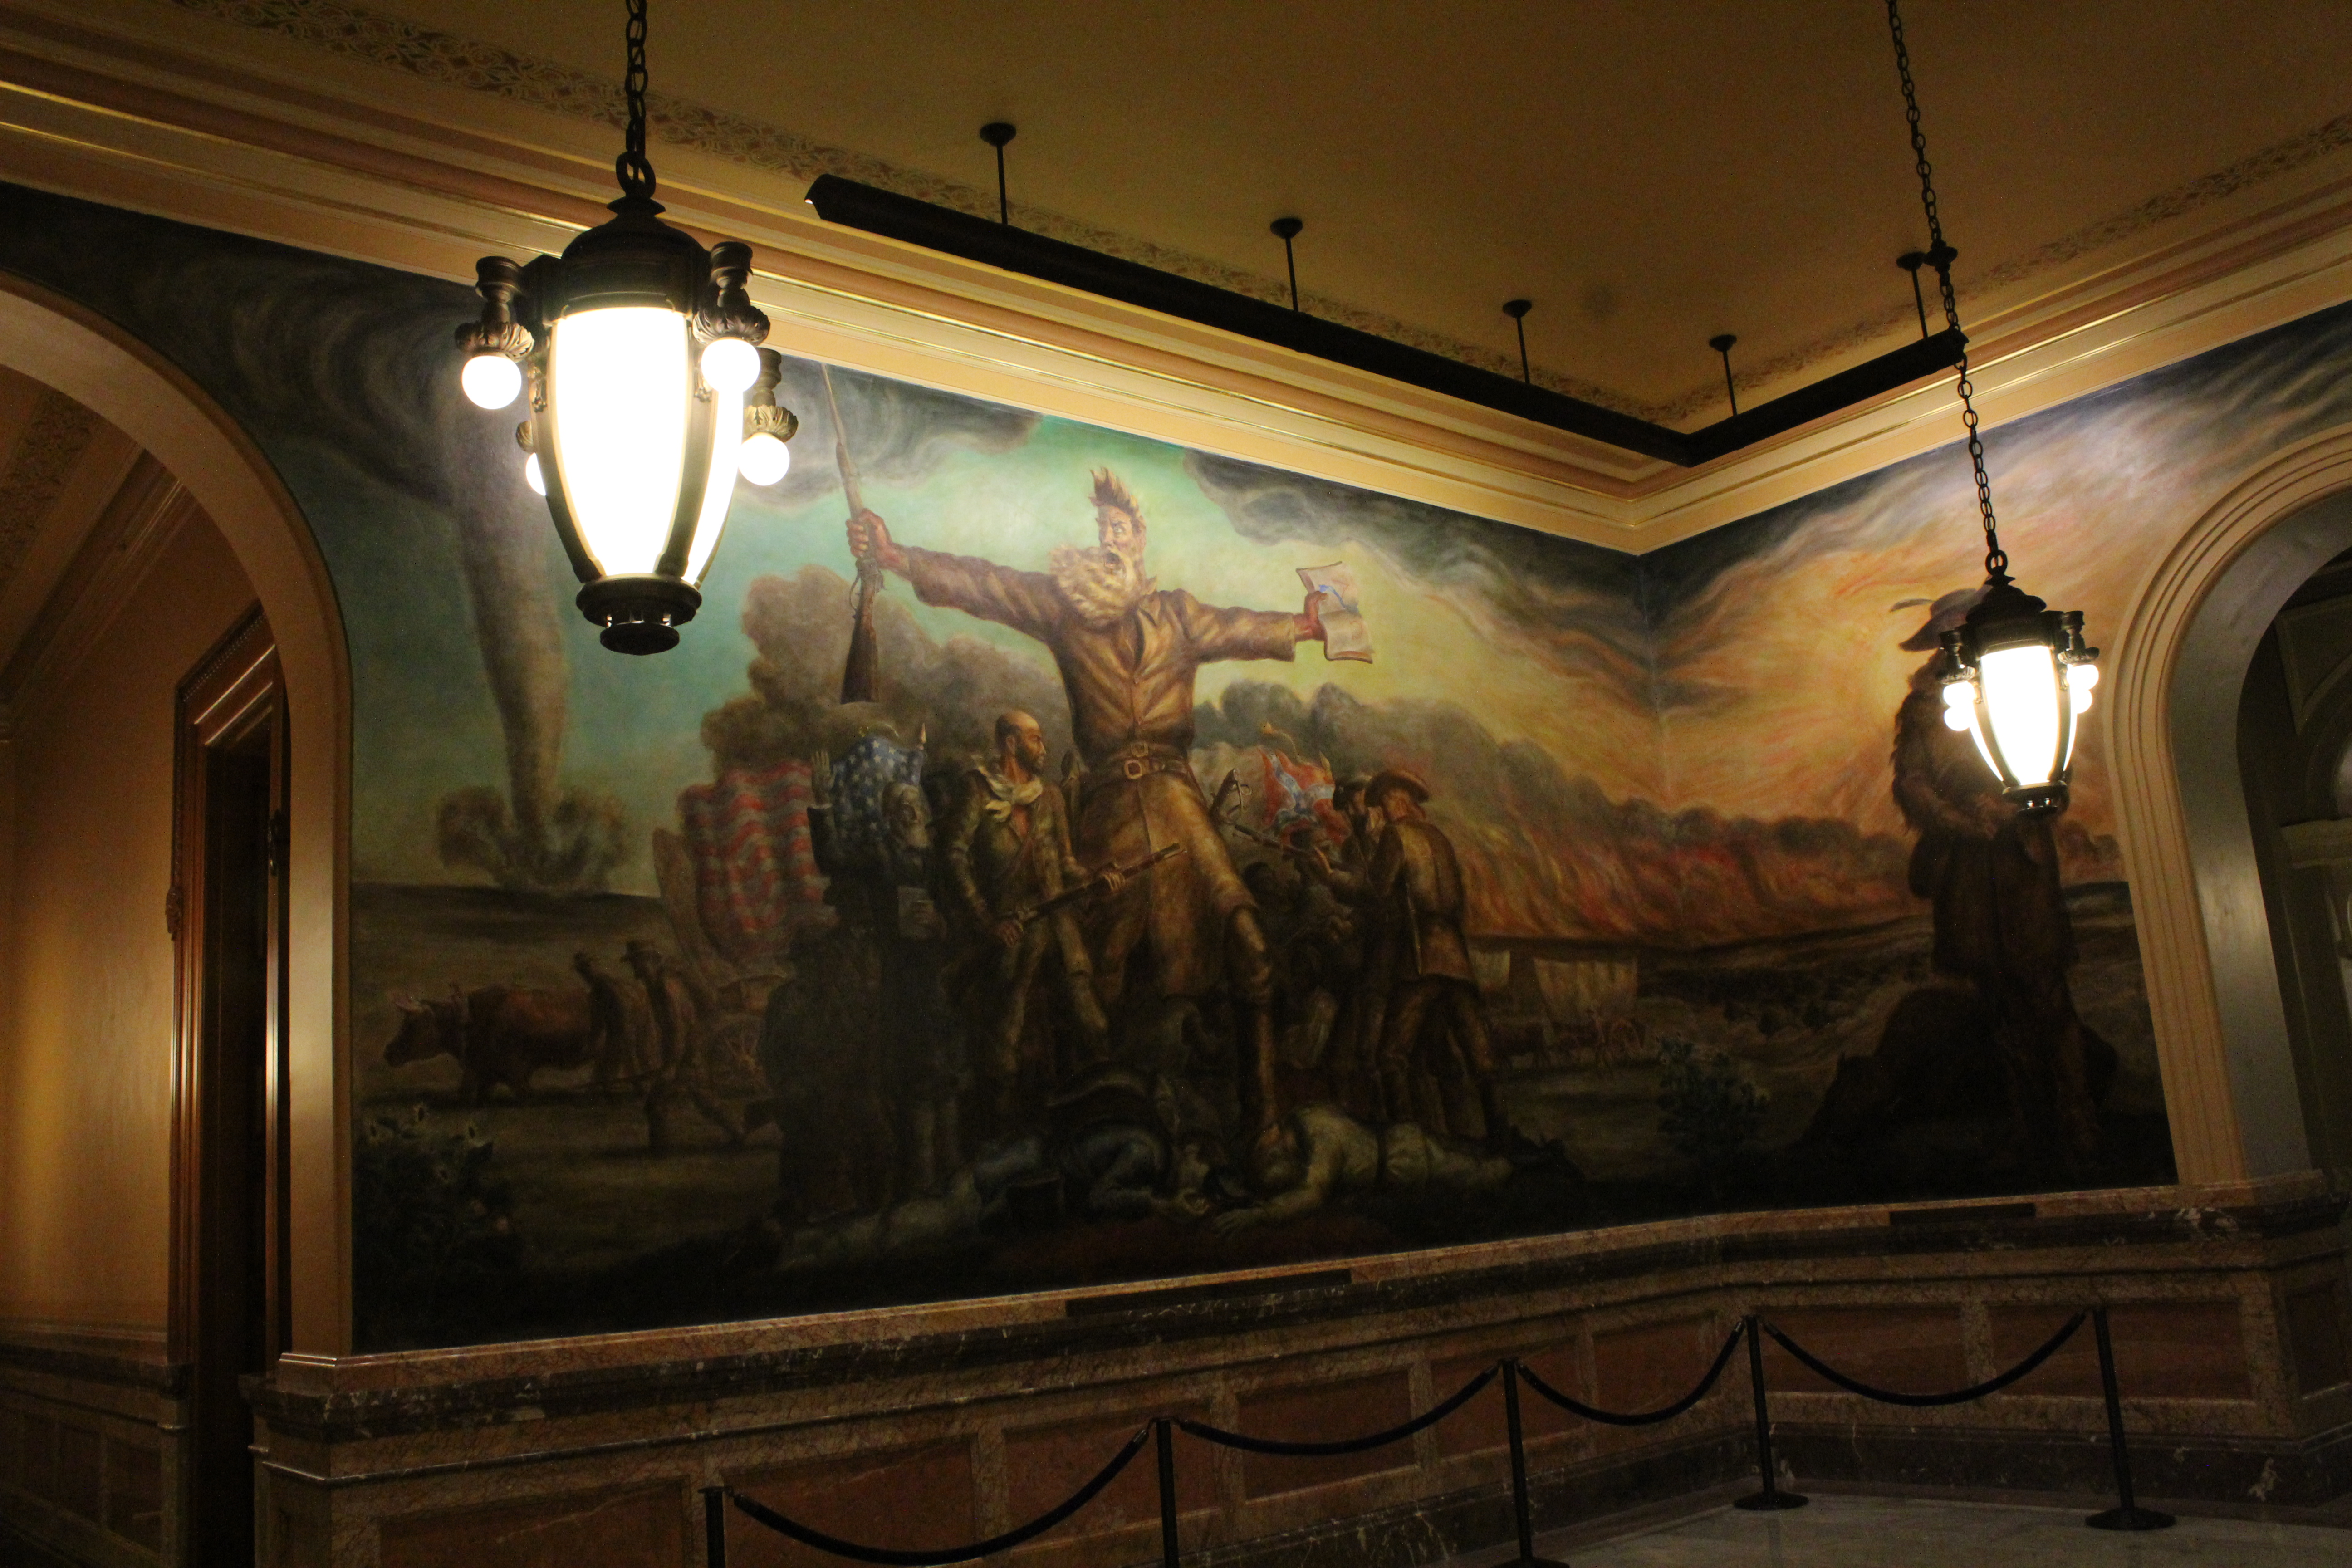 Abolitionist John Brown takes center stage in this iconic mural by John Steuart Curry.  The unsigned piece, titled Tragic Prelude, depicts an approaching tornado, foreshadowing the American Civil War. (Photo by J. Schafer)